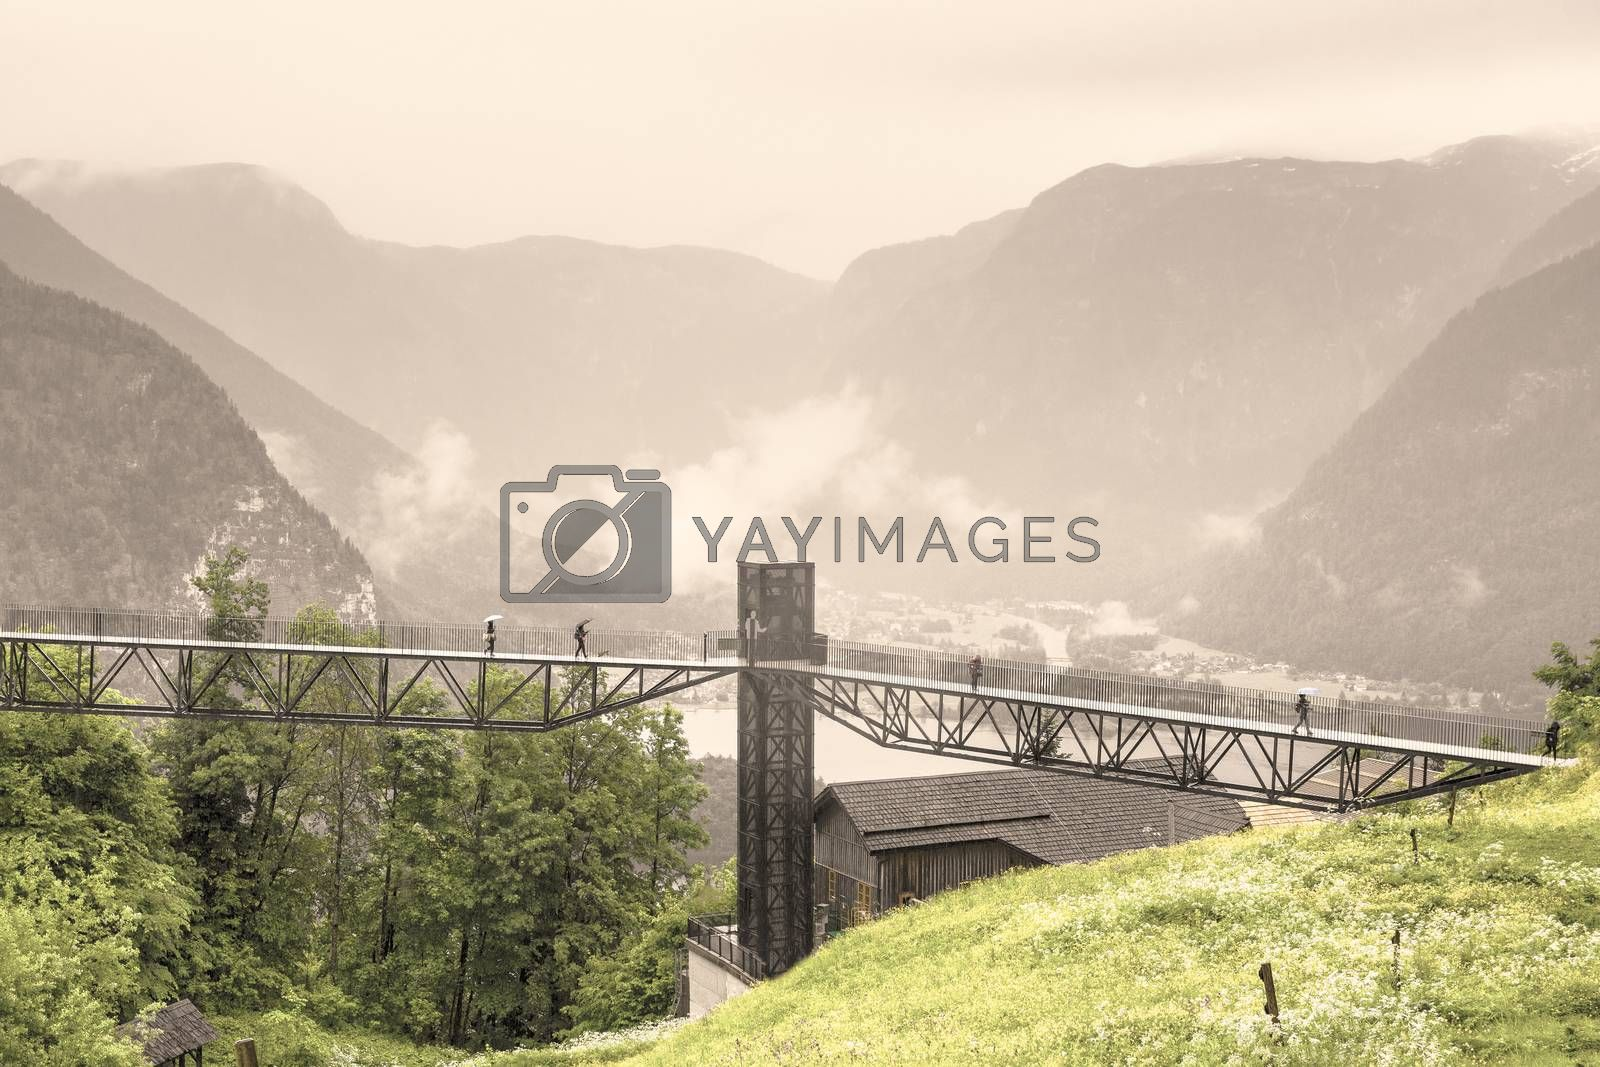 Morning mist, rain and clouds over the Austrian landscape with forests, mountains, pastures, meadows and villages.  View of the lake Hallstattersee in Austria through the pedestrian bridge. Vintage style